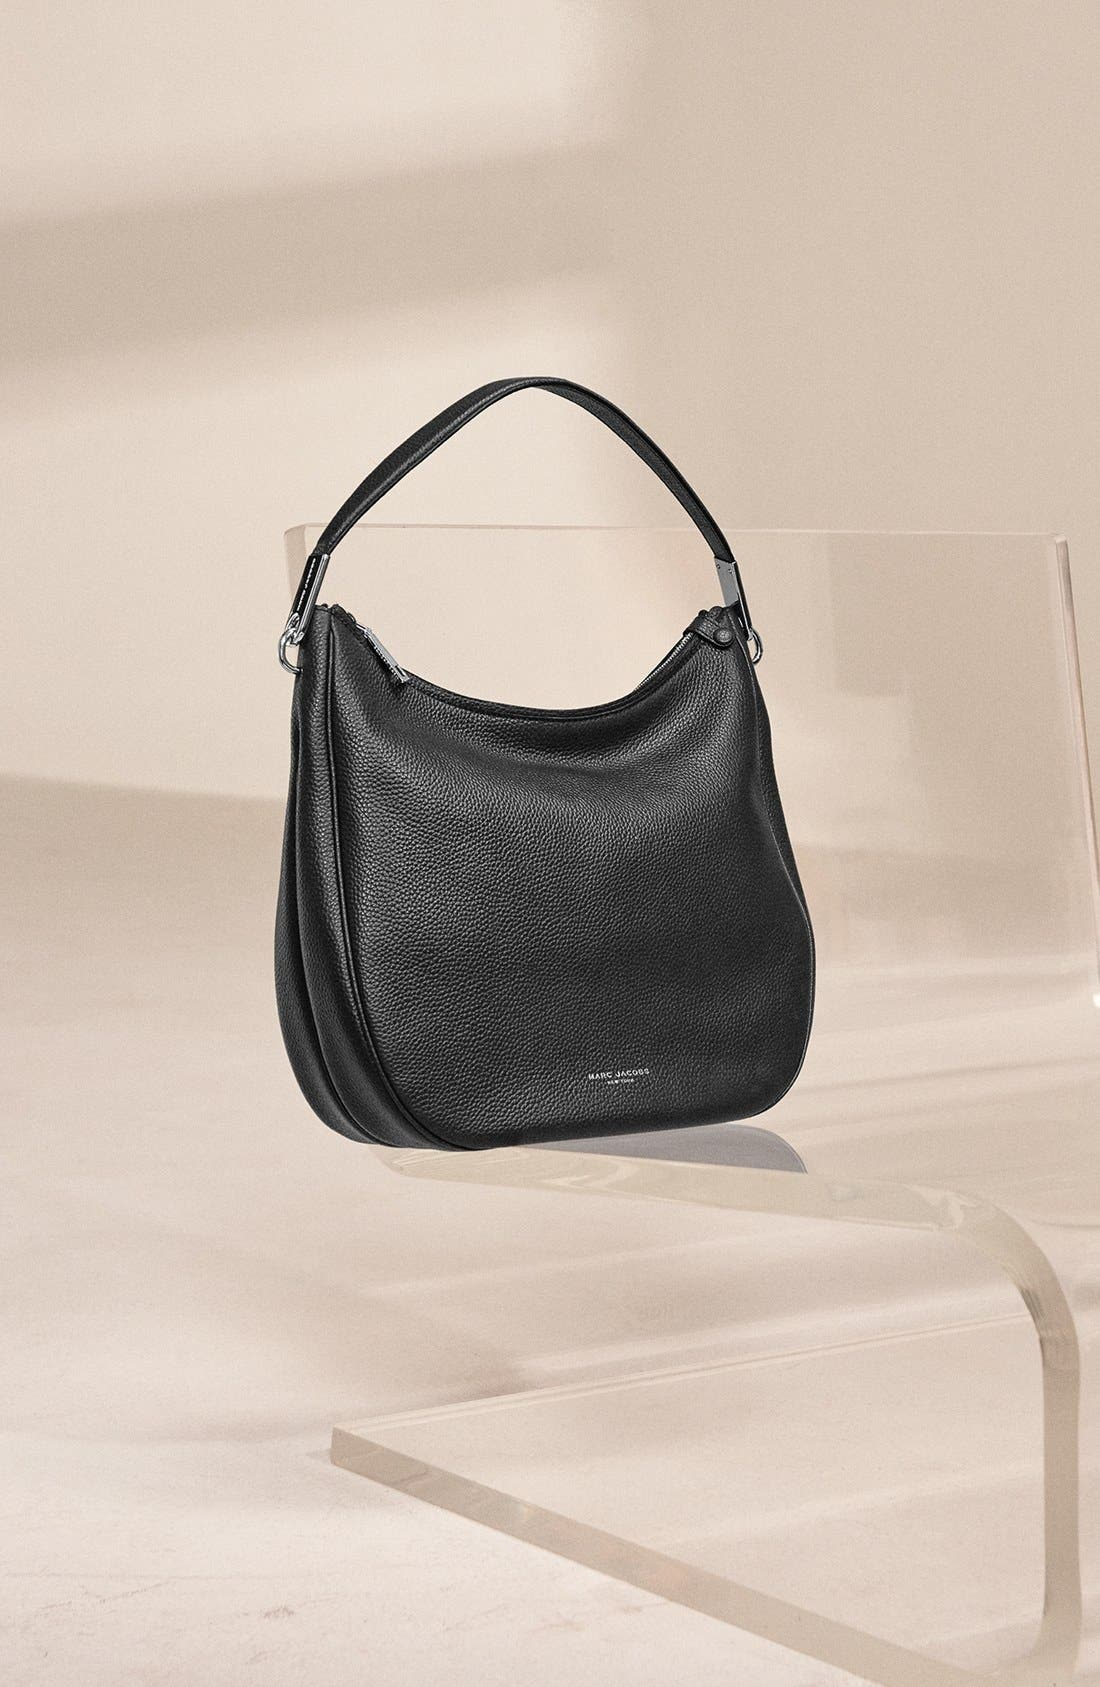 MARC JACOBS, 'Pike Place' Leather Hobo, Alternate thumbnail 4, color, 001